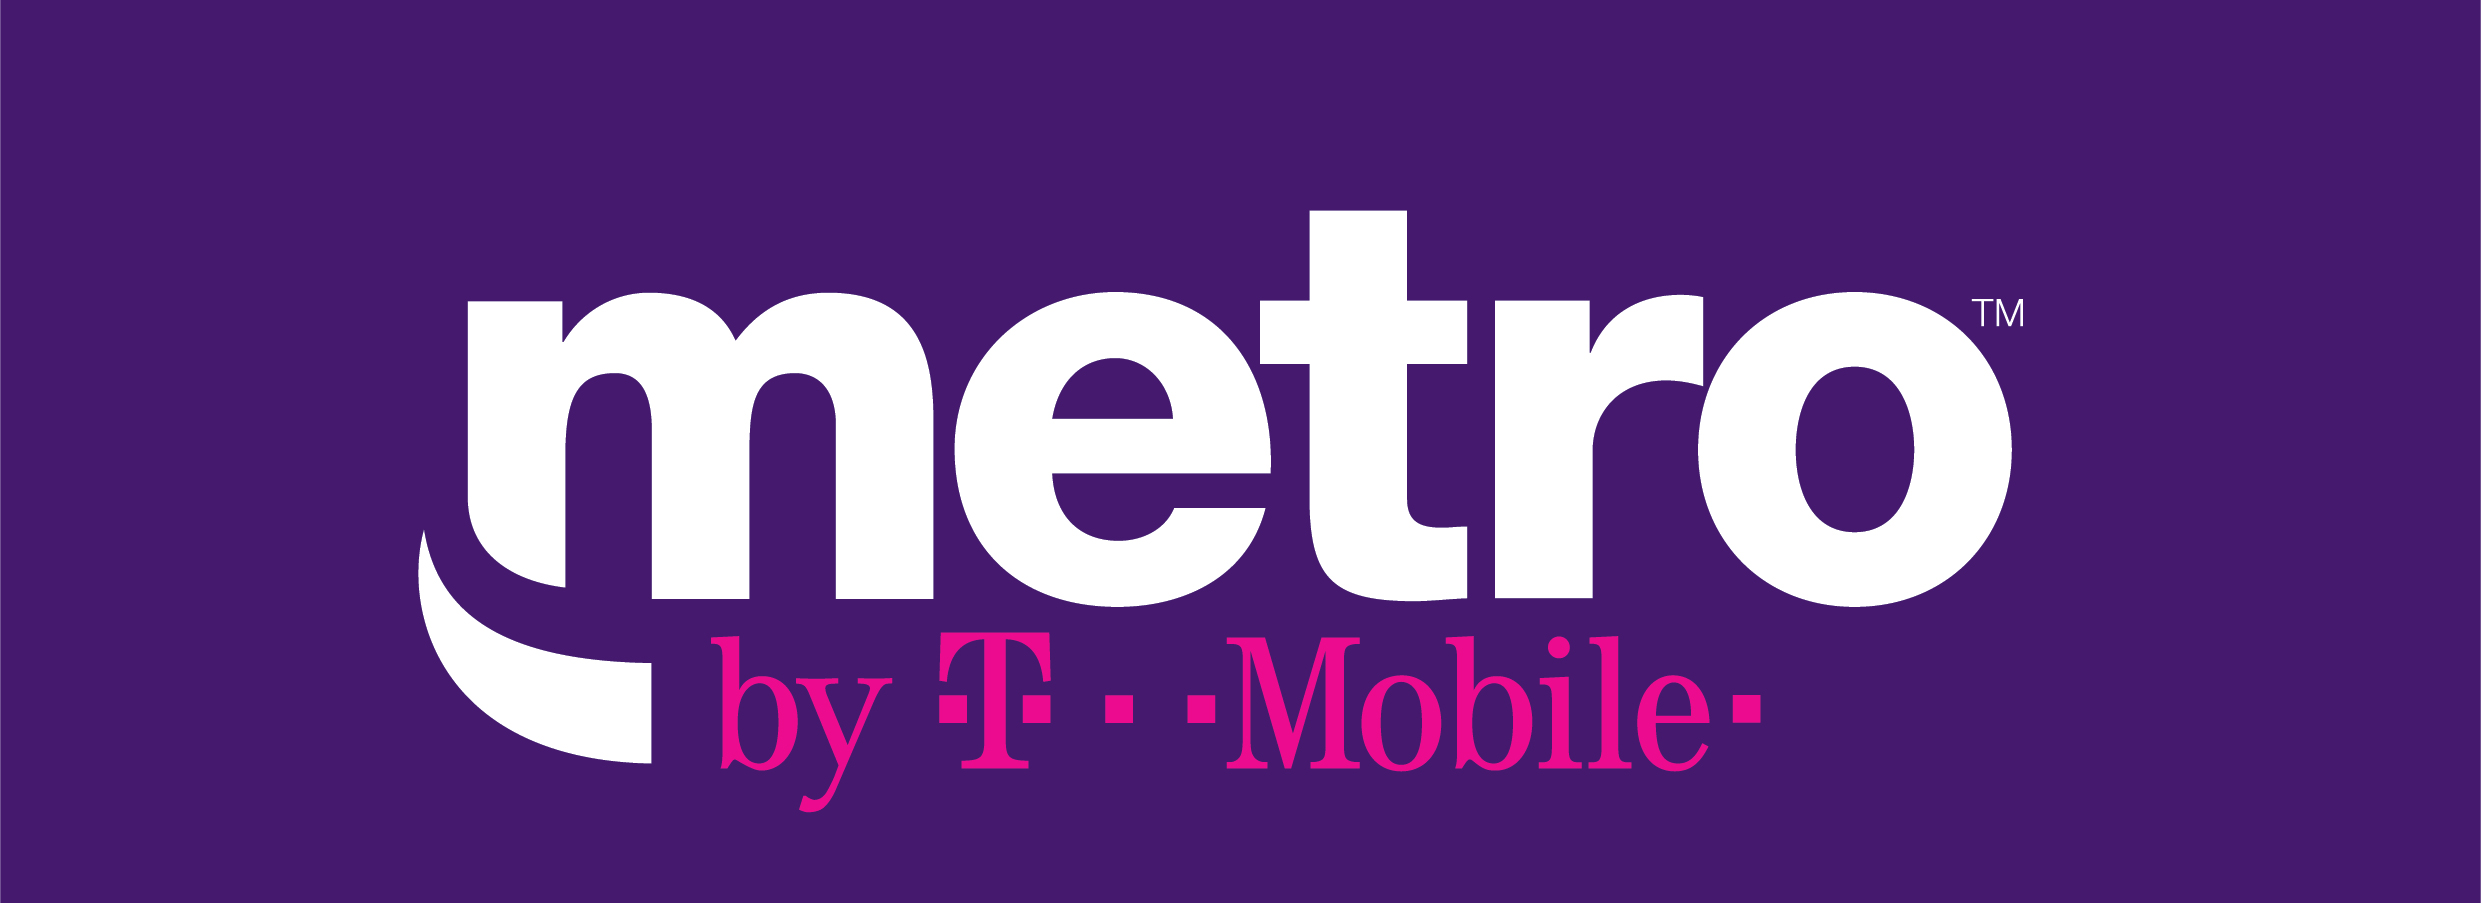 Metro by T-Mobile now offering a way for customers to change